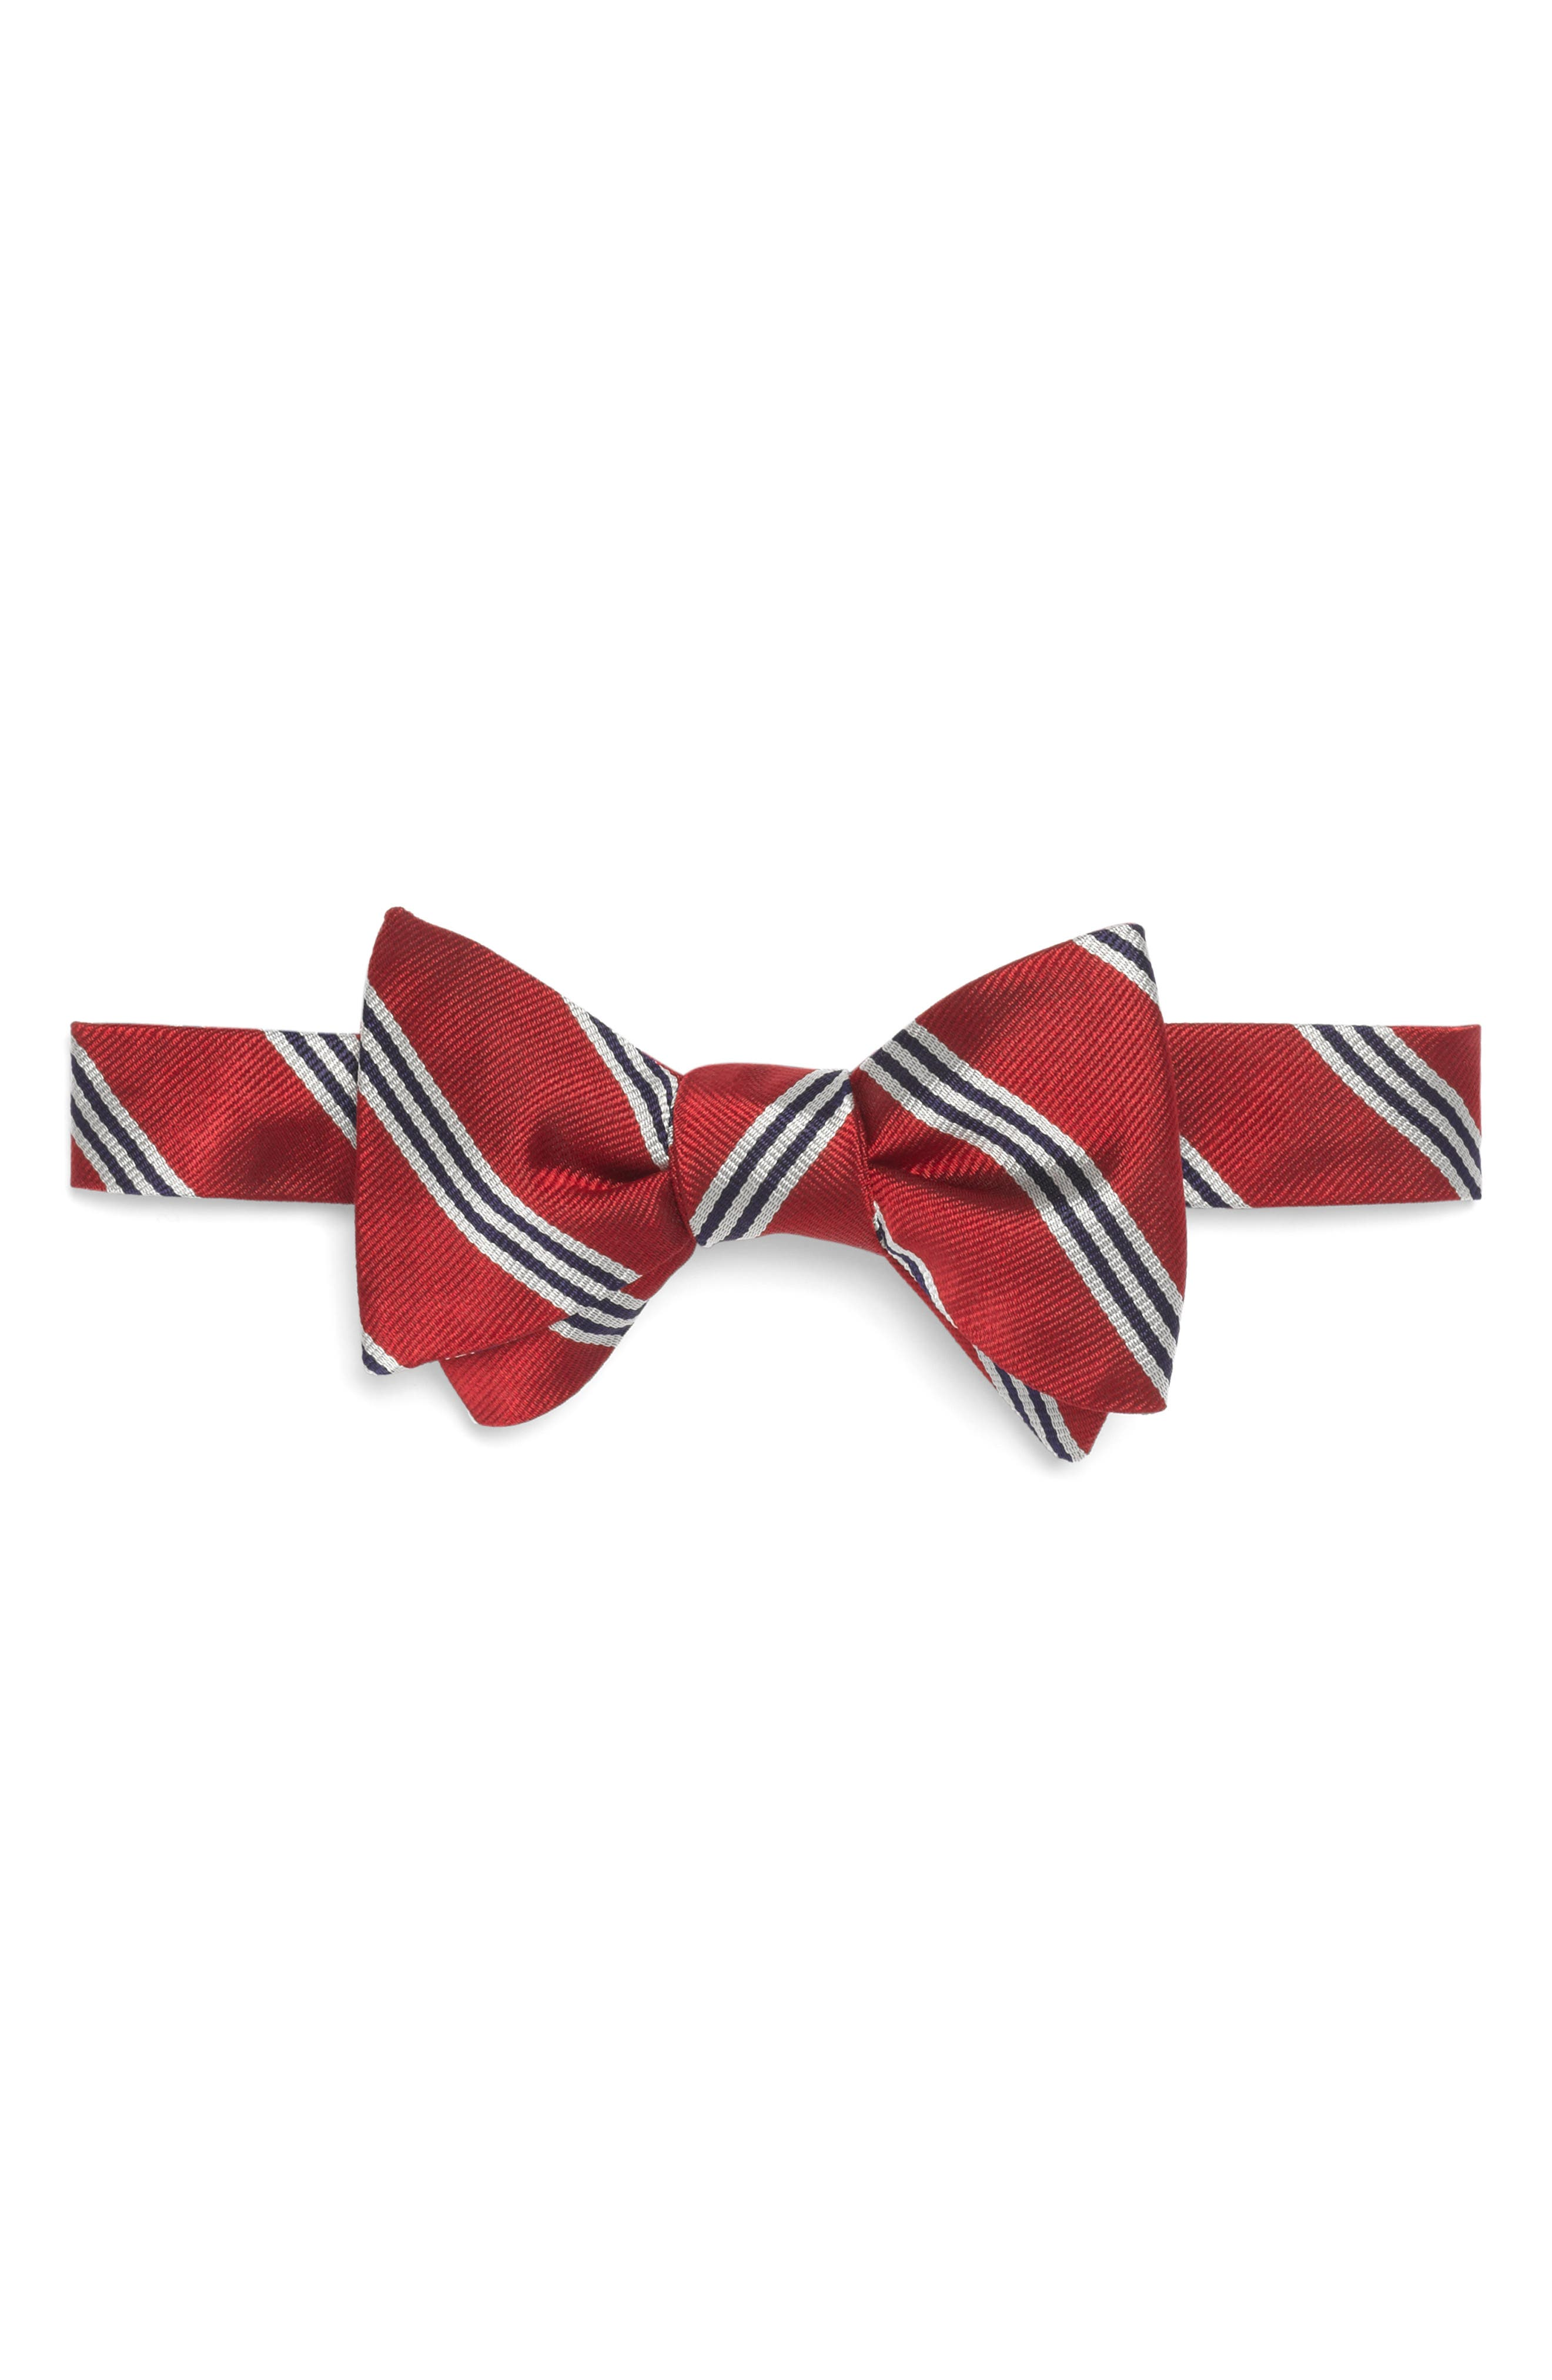 New 1920s Style Ties and Bowties Mens Brooks Brothers Silk Stripe Bow Tie $89.50 AT vintagedancer.com